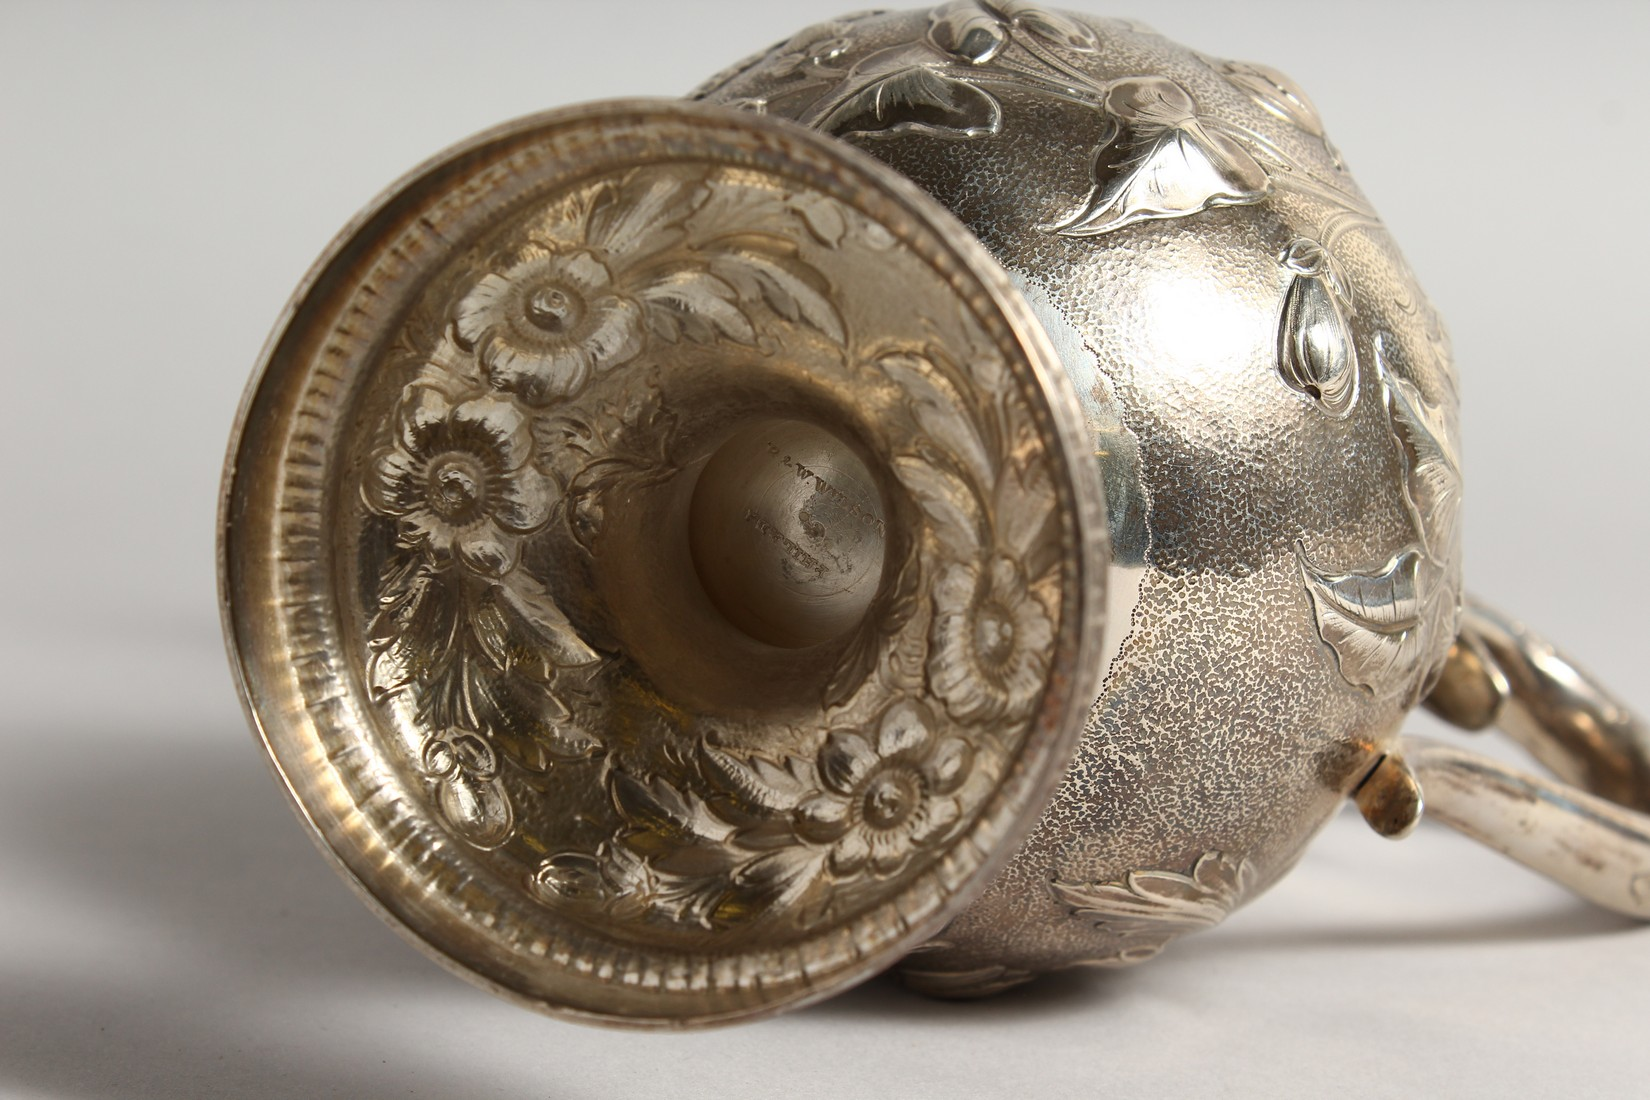 AN R & W WILSON 19TH CENTURY PHILADELPHIA SILVER JUG repousse with flowers and scrolls 8ins high, - Image 7 of 8